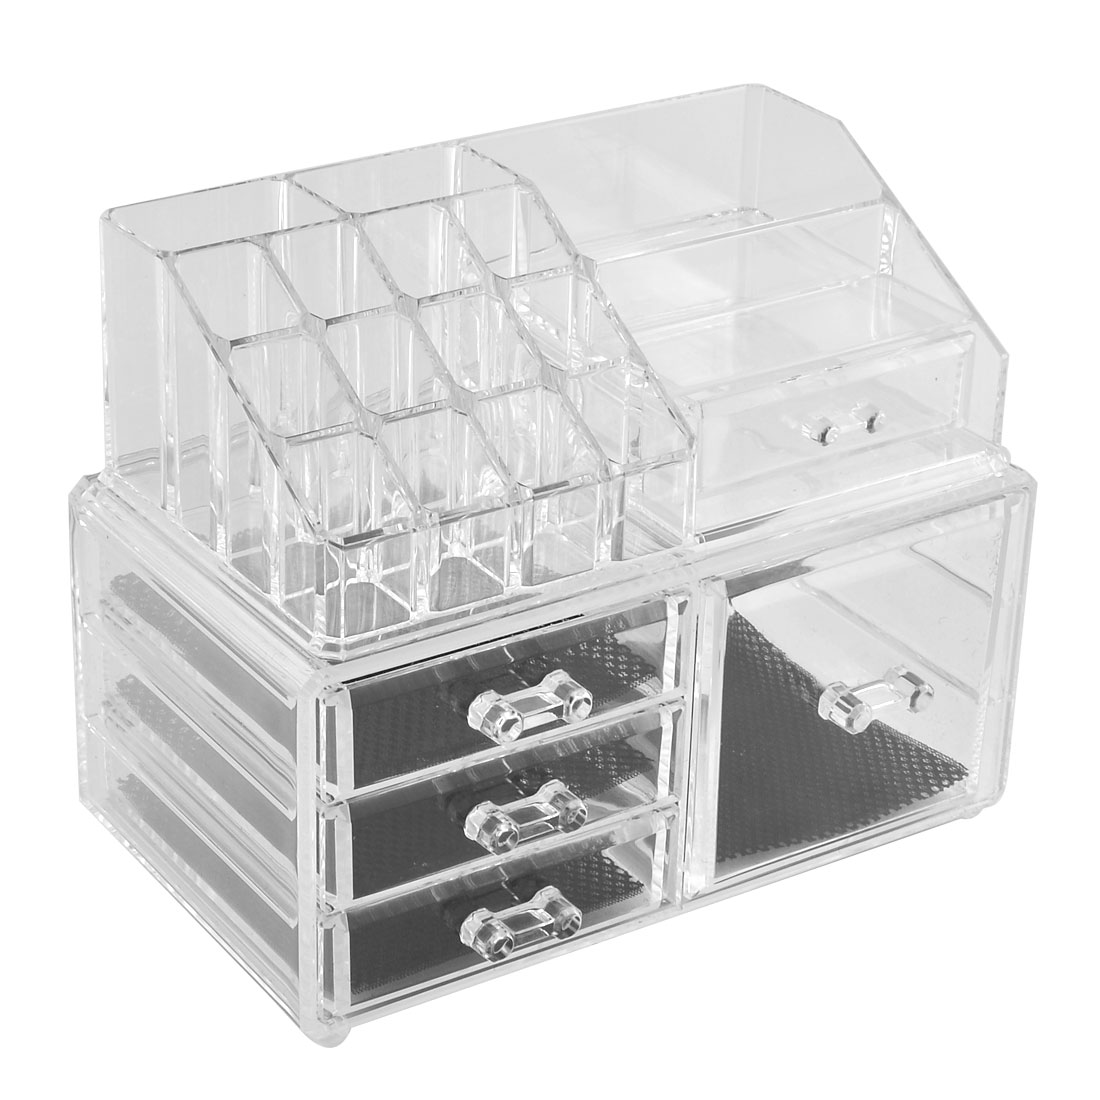 Home Acrylic Multilayers Jewelry Makeup Case Box Cosmetic Organizer Set 2 in 1